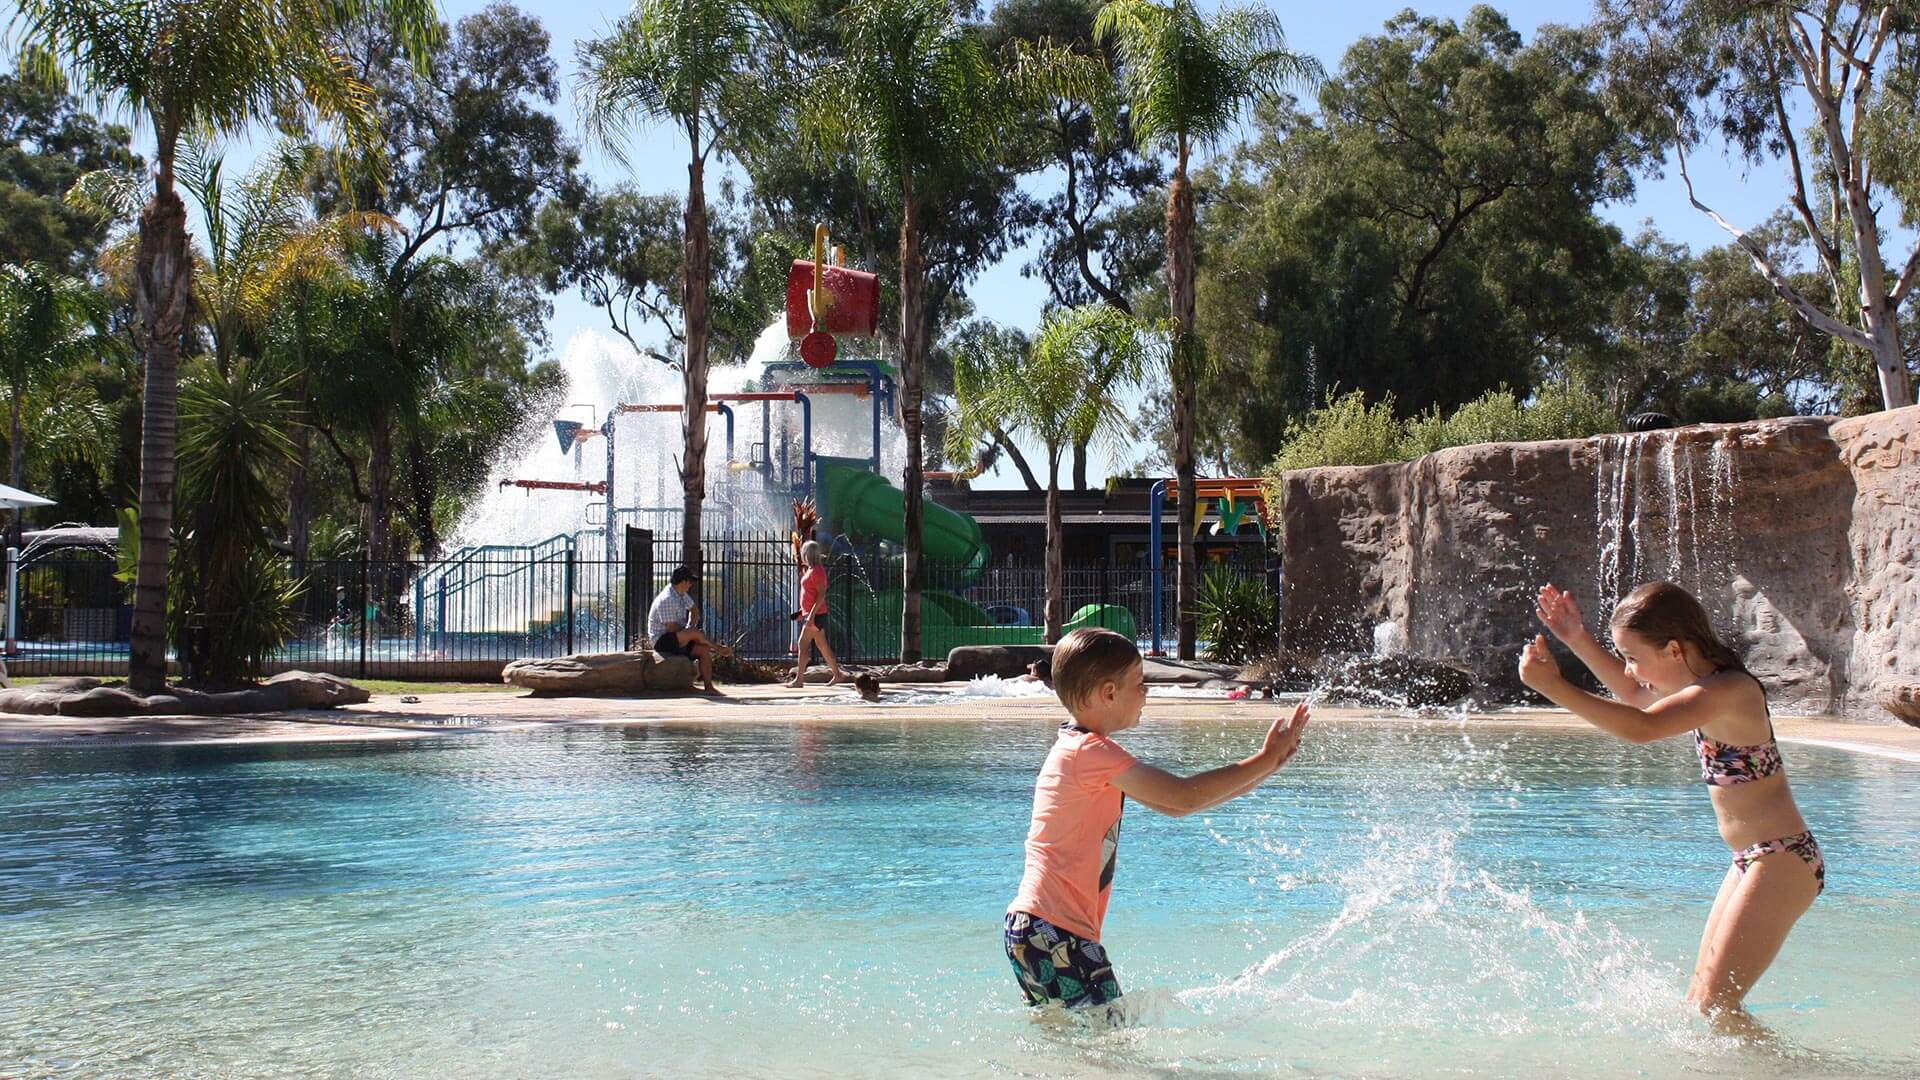 Kids playing in the pool at BIG4 Renmark Riverfront Holiday Park